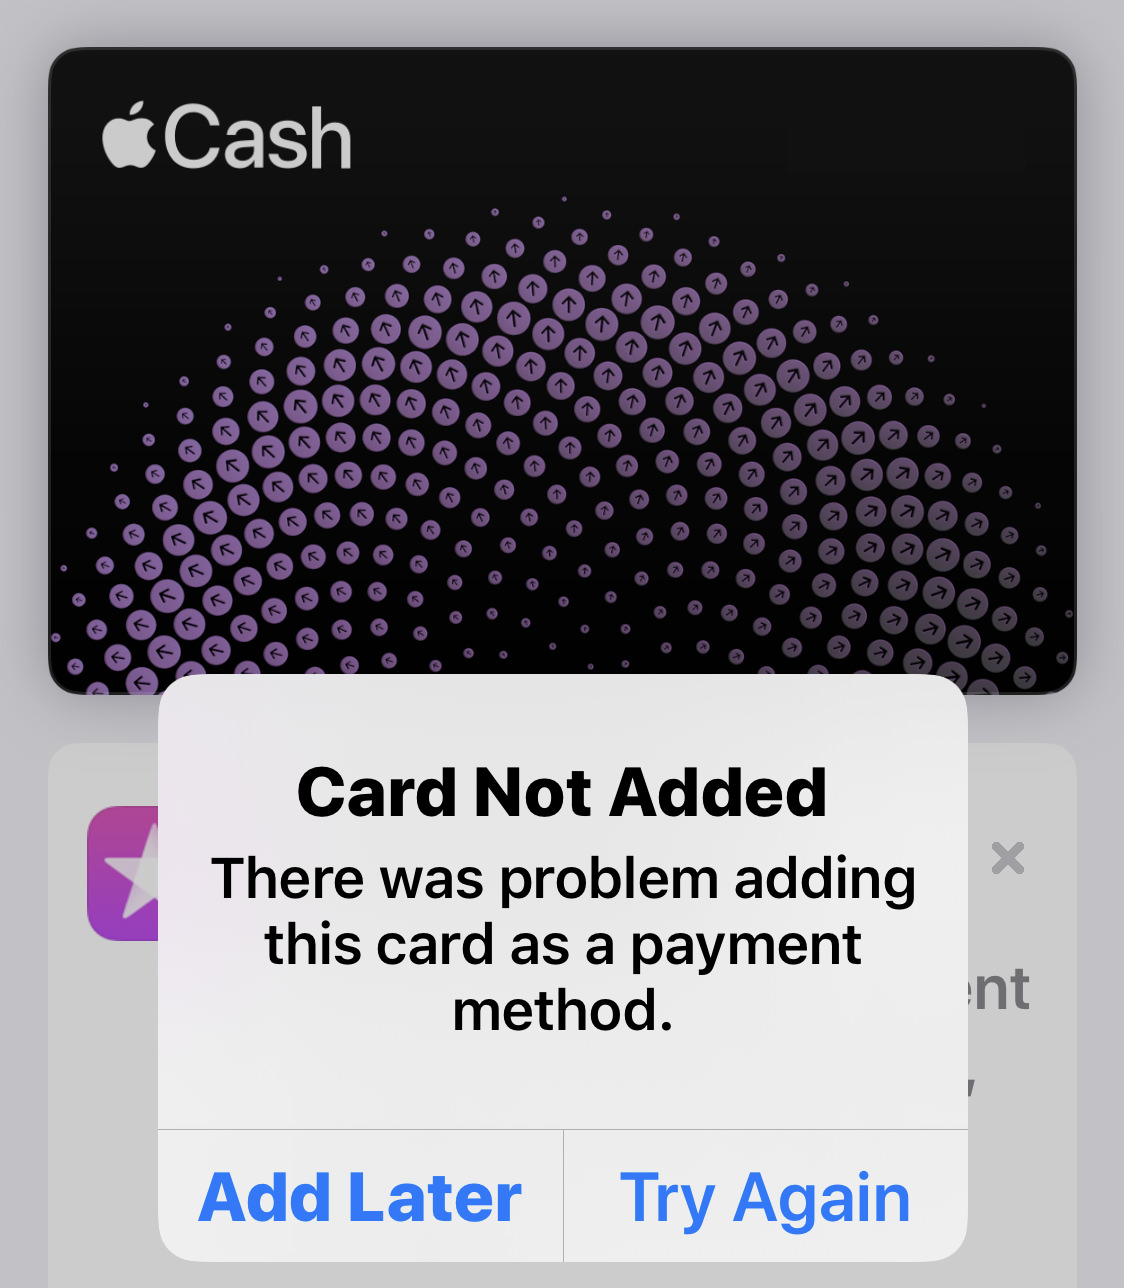 Error messag telling me that There was a problem adding the card as a payment method.